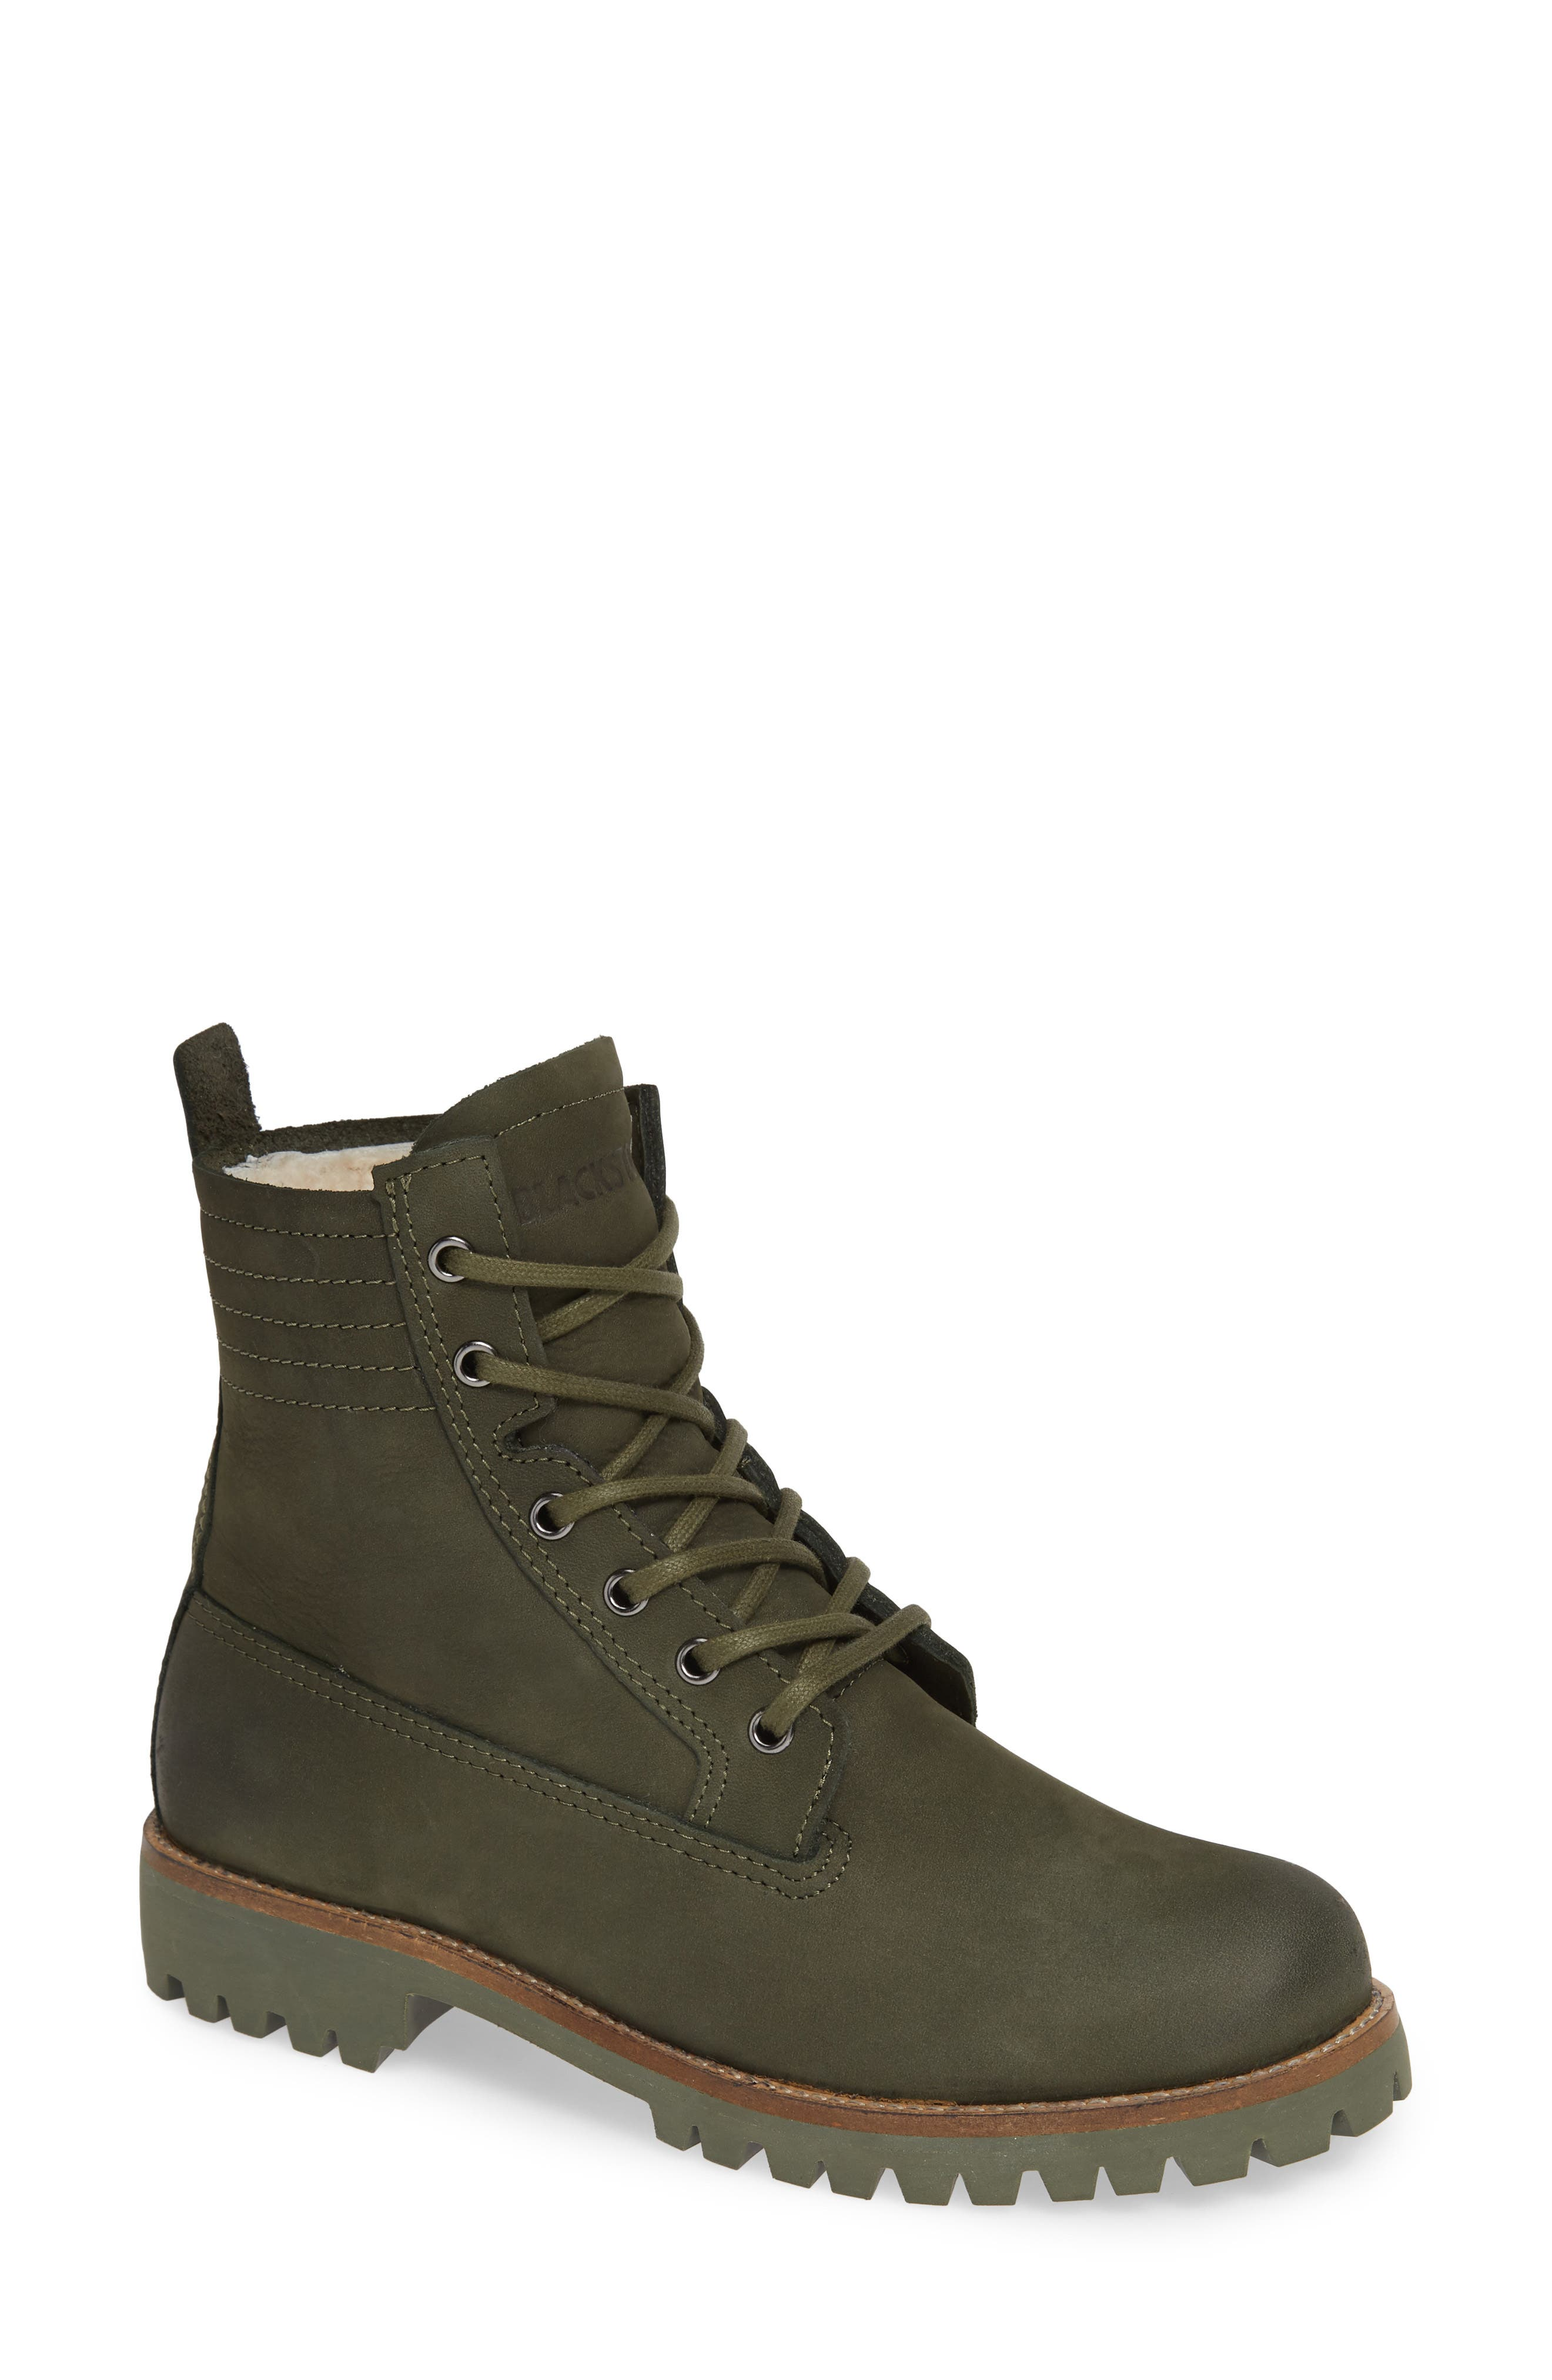 Blackstone Ol22 Lace-Up Boot With Genuine Shearling Lining, Green